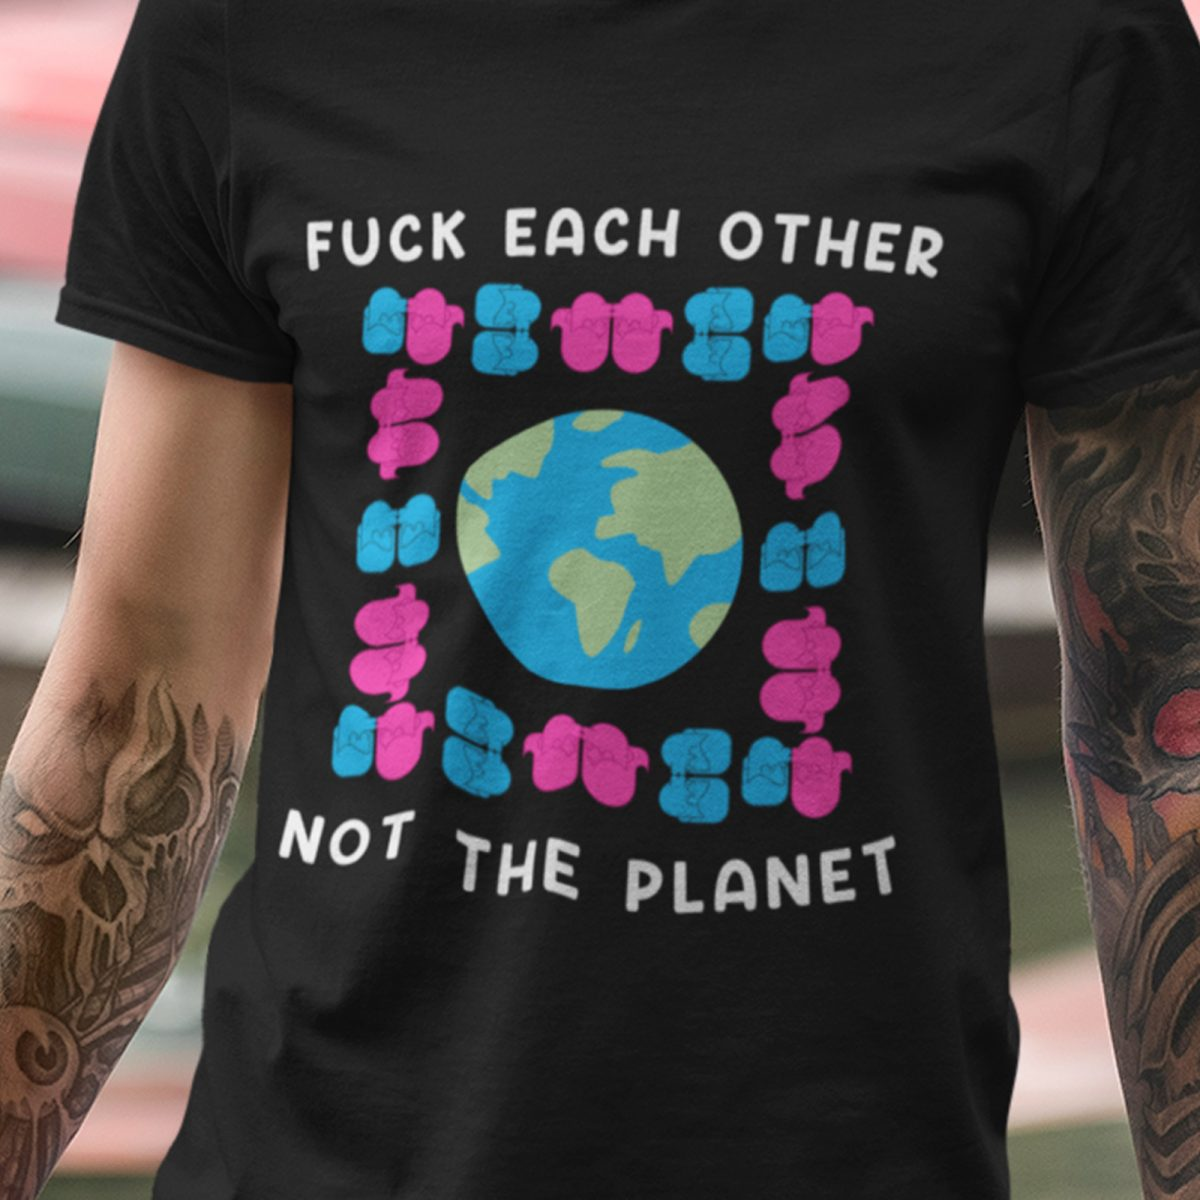 fuck-each-other-not-the-planet-filthy-BDSM-kinky-unisex-tshirt-close